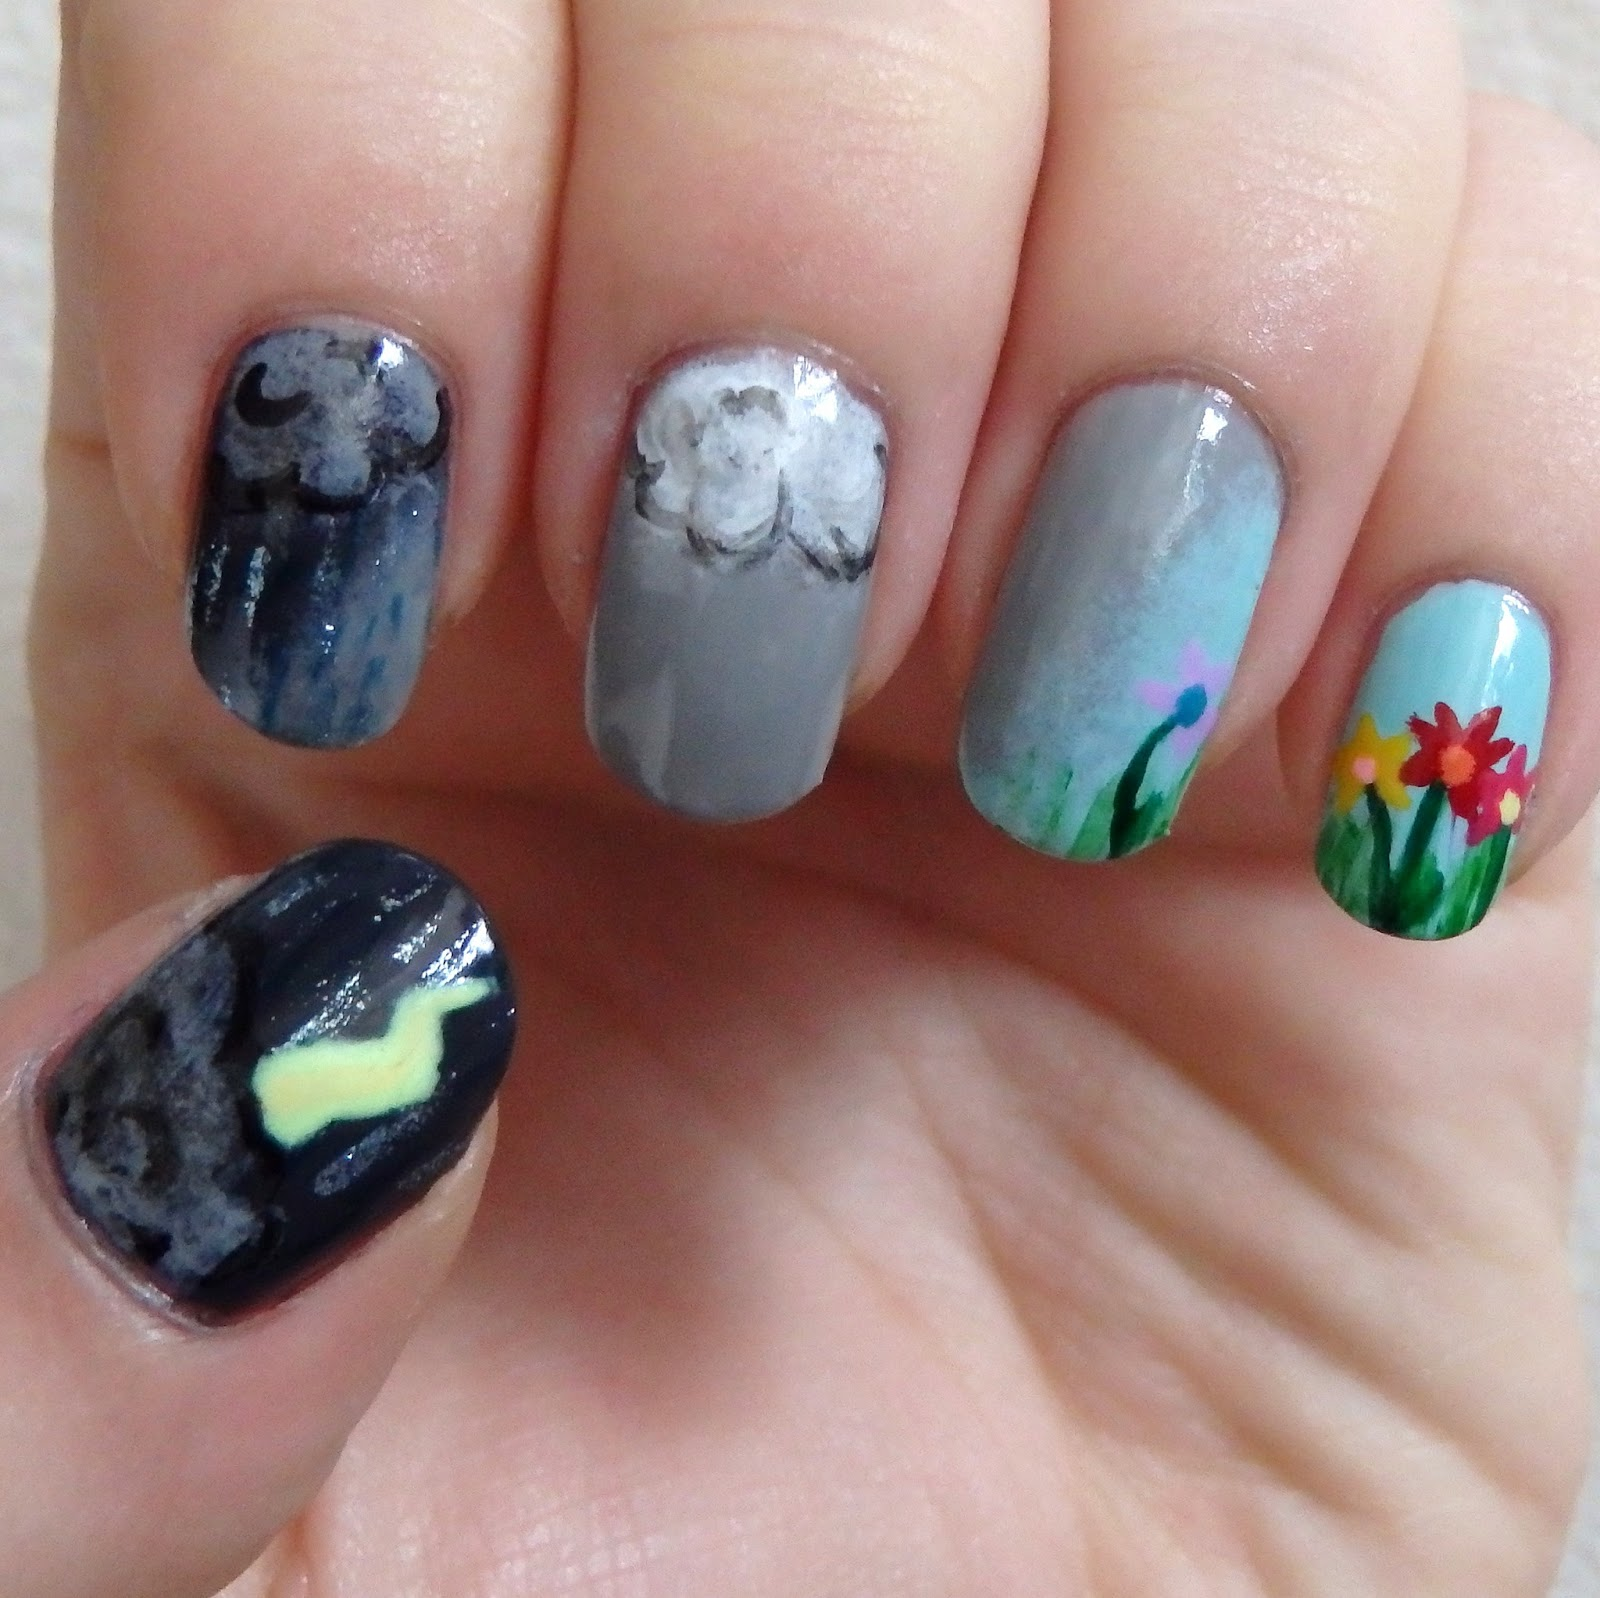 Nail Ideas For April: April Showers Bring May Flowers